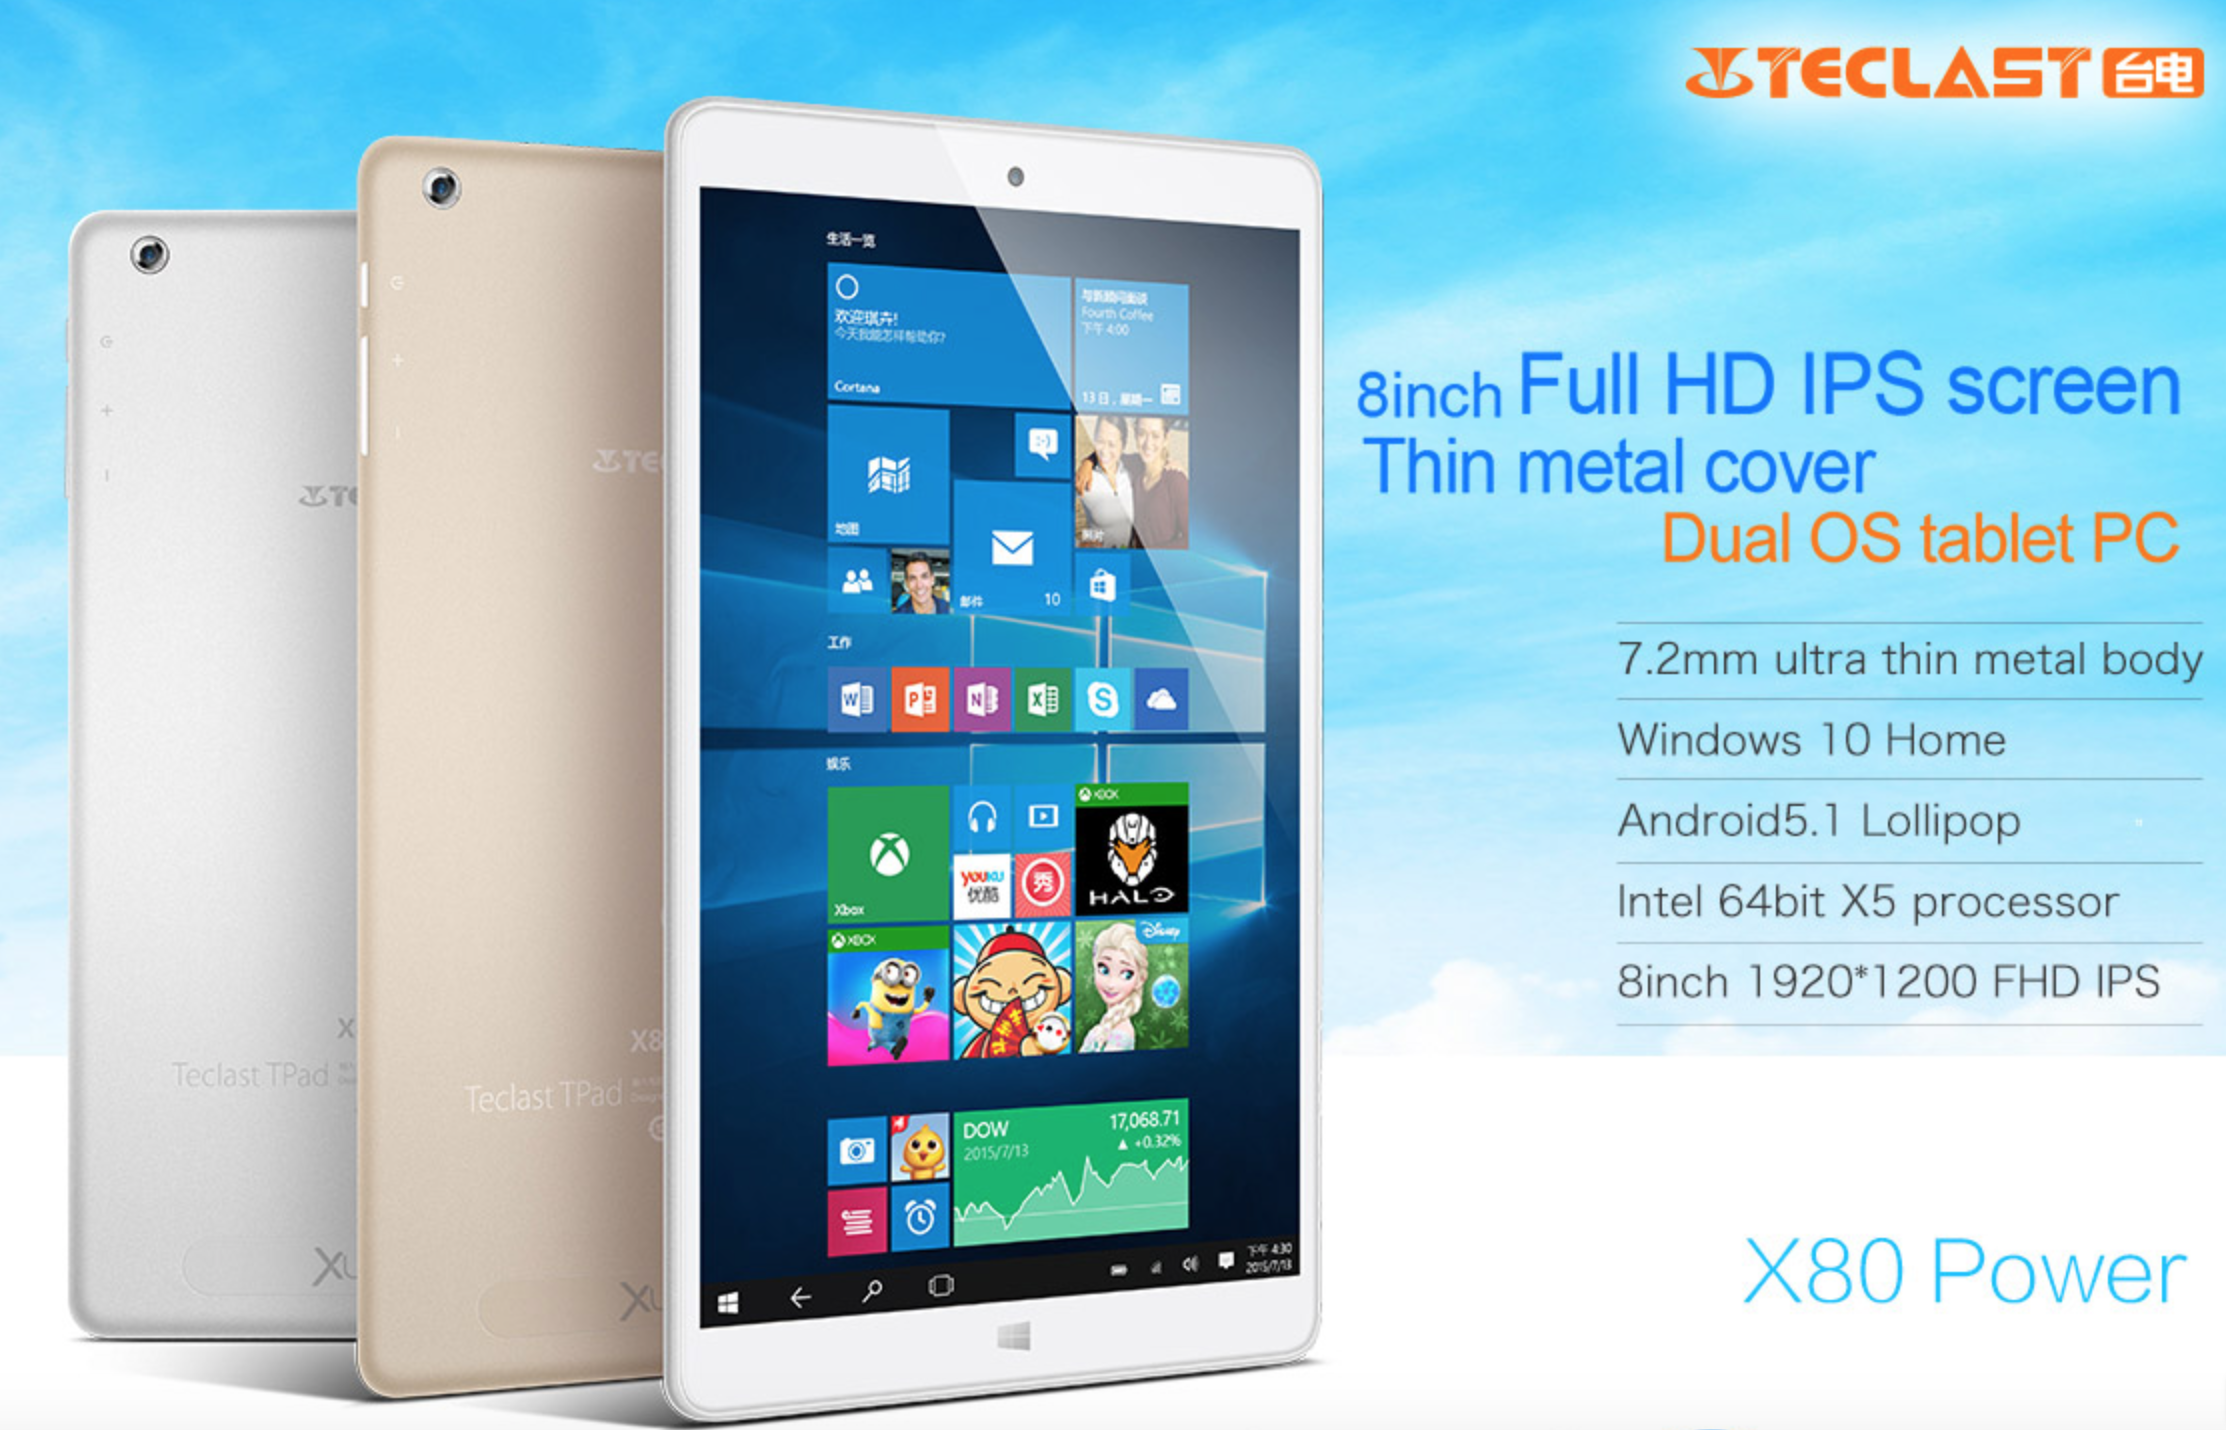 Teclast X80 Power 8.0'' Tablet PC Windows 10 Android 5.1 2GB RAM 32GB ROM IPS Intel Cherry Trail Z8300 Quad Core 3800mAh Tablet